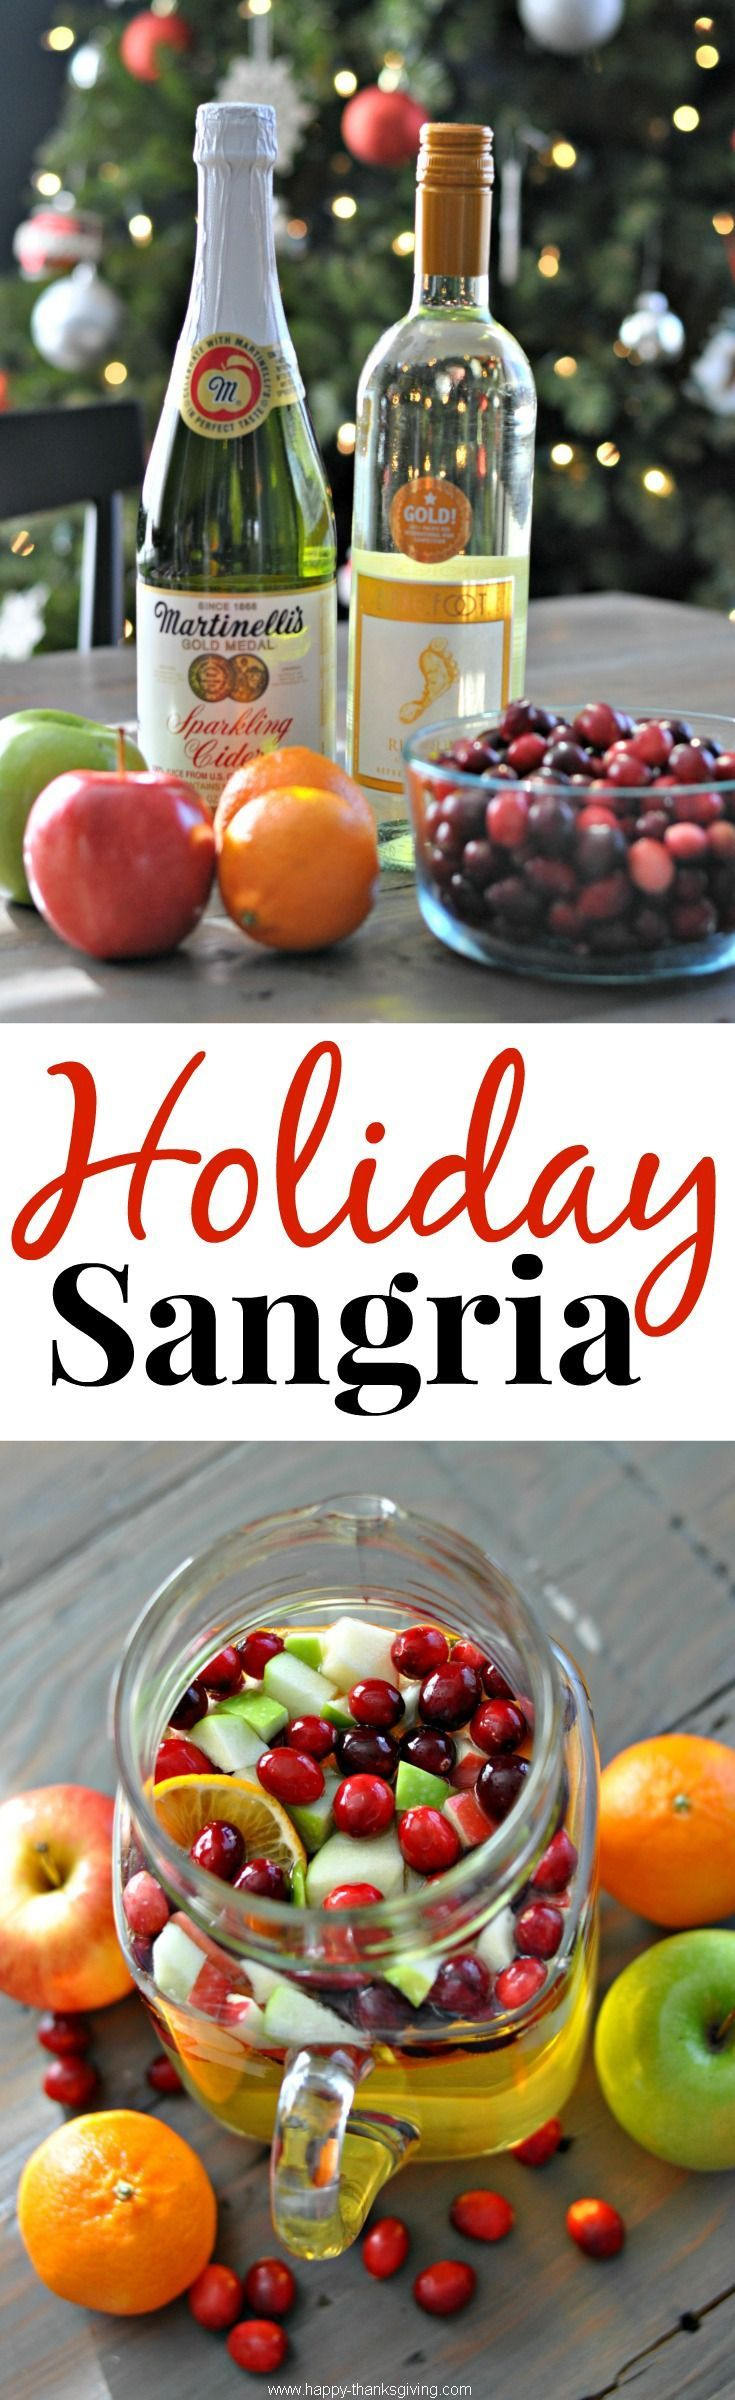 thanksgiving recipes -                                                      Holiday Sangria. Beautiful drink to serve your guests! Made without the wine and sparkling white grape instead of cider......